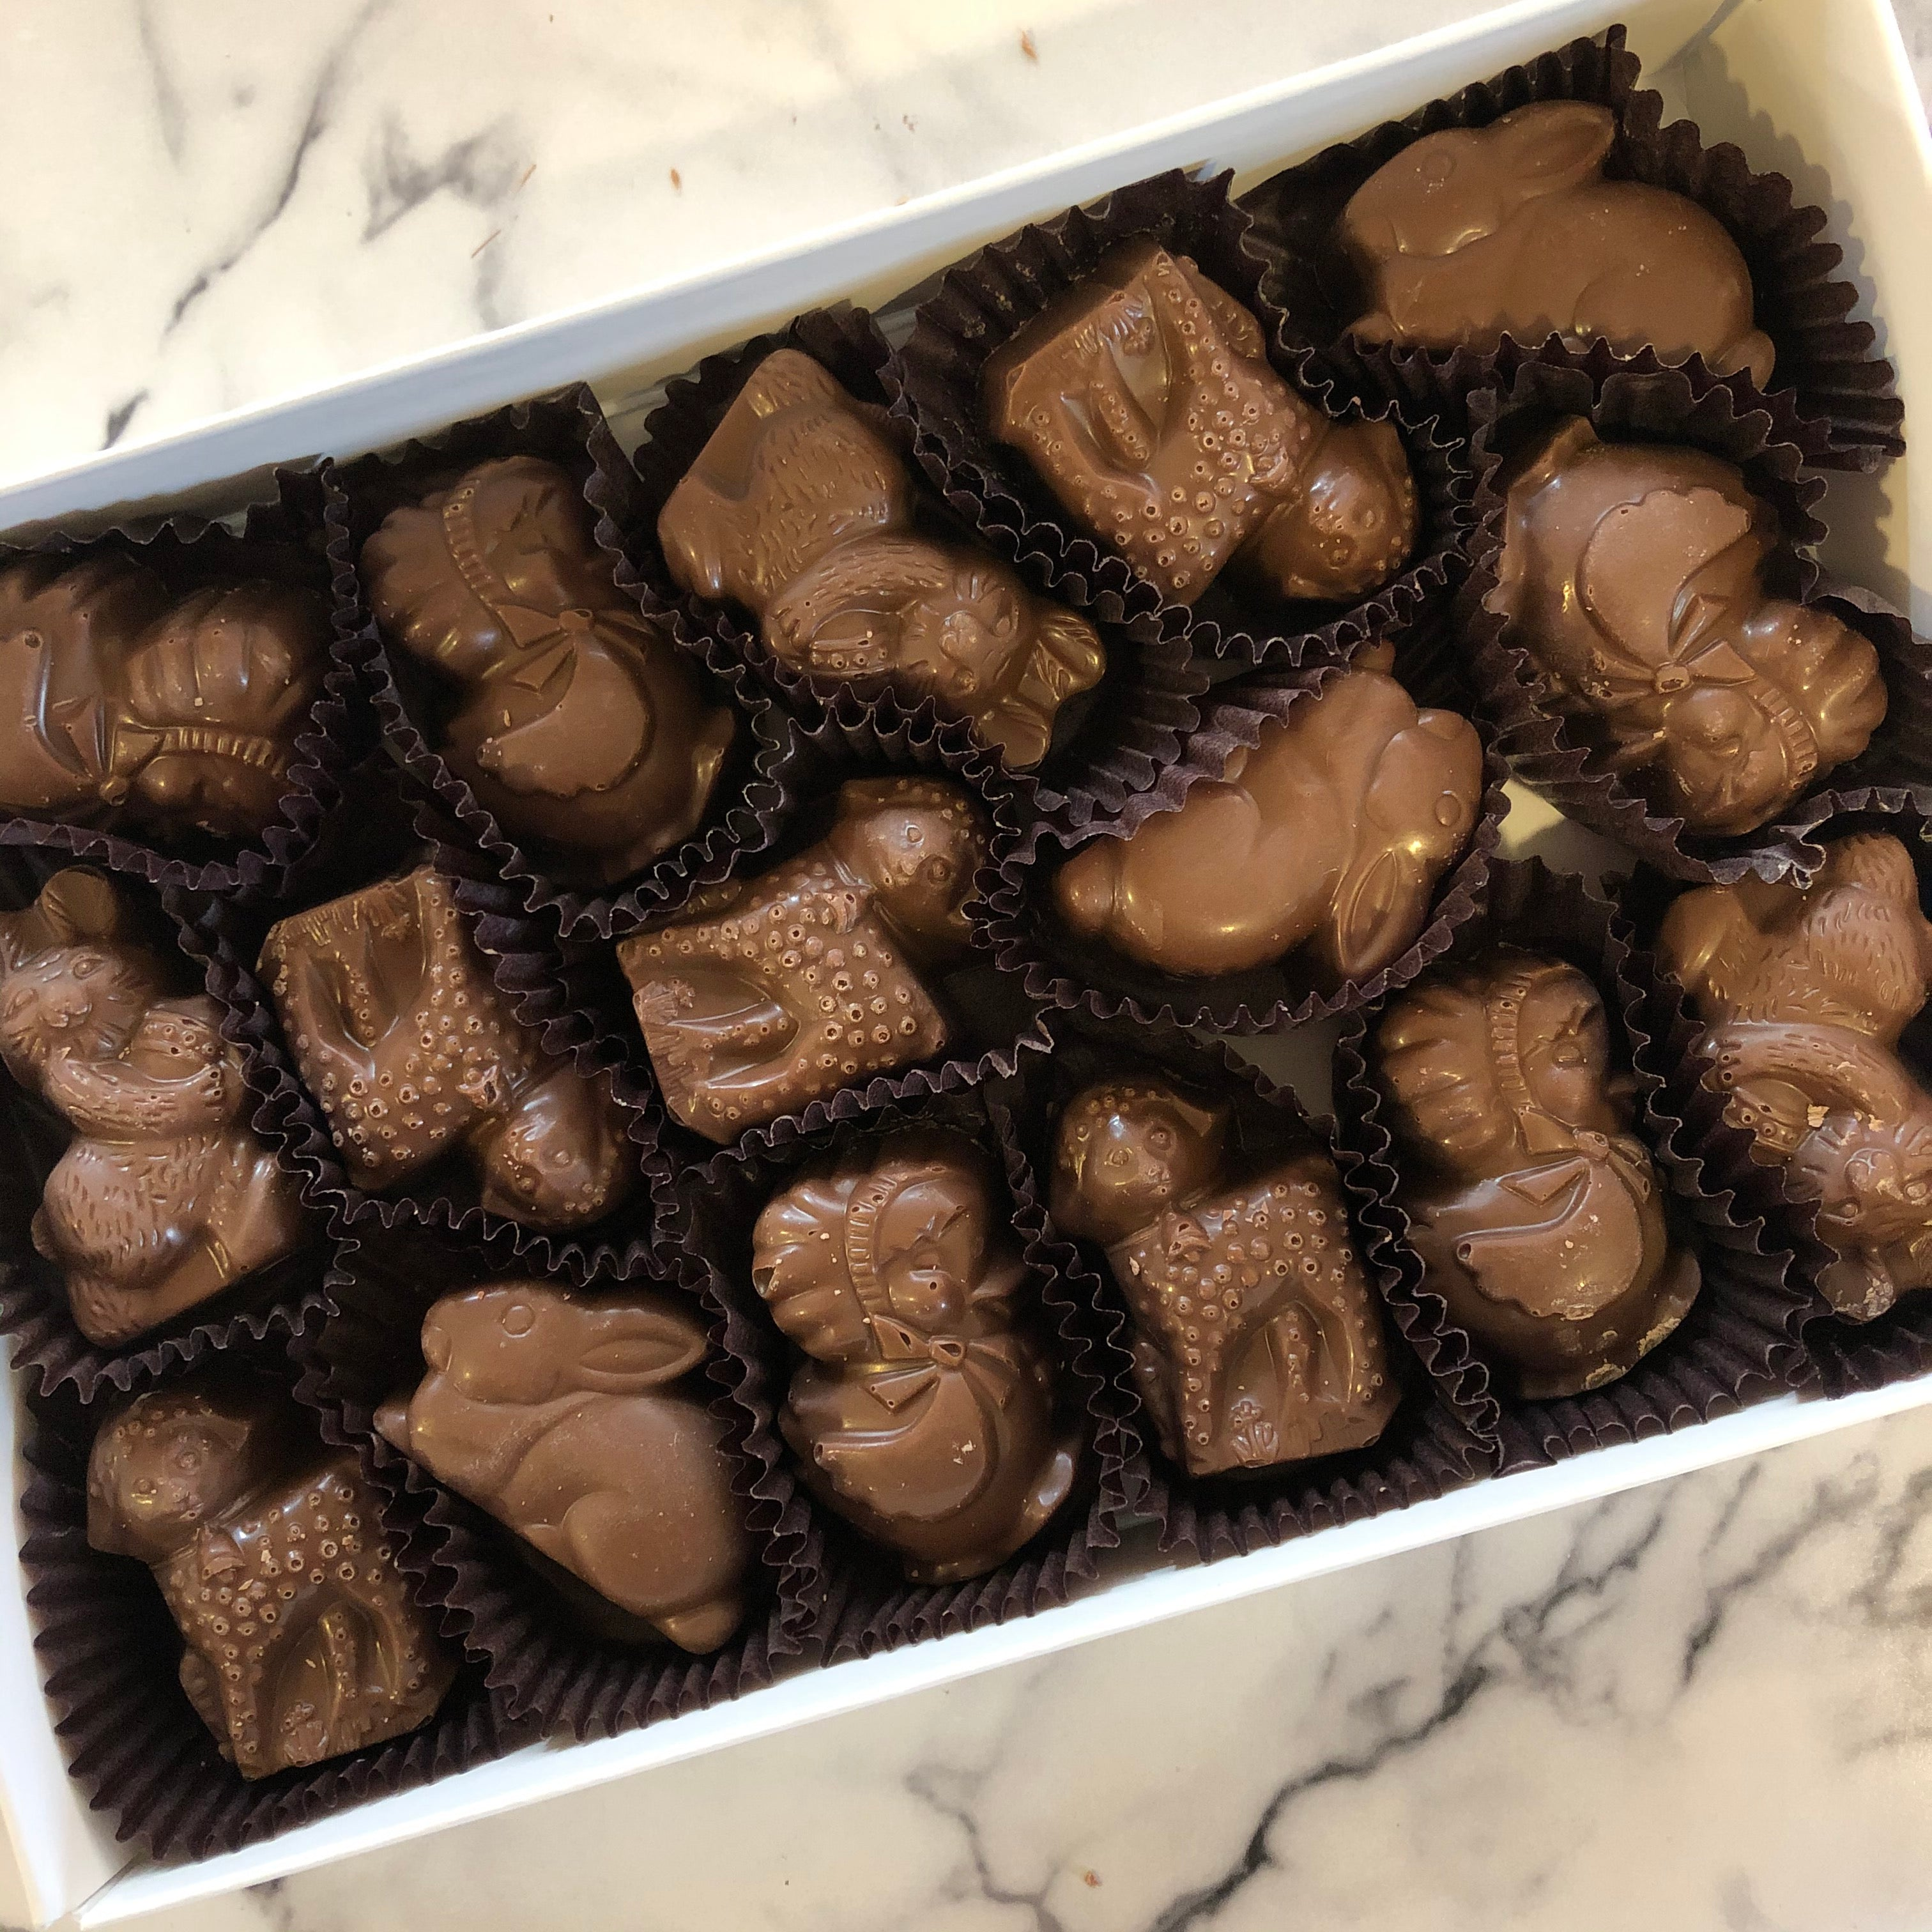 Peanut butter Easter chocolates